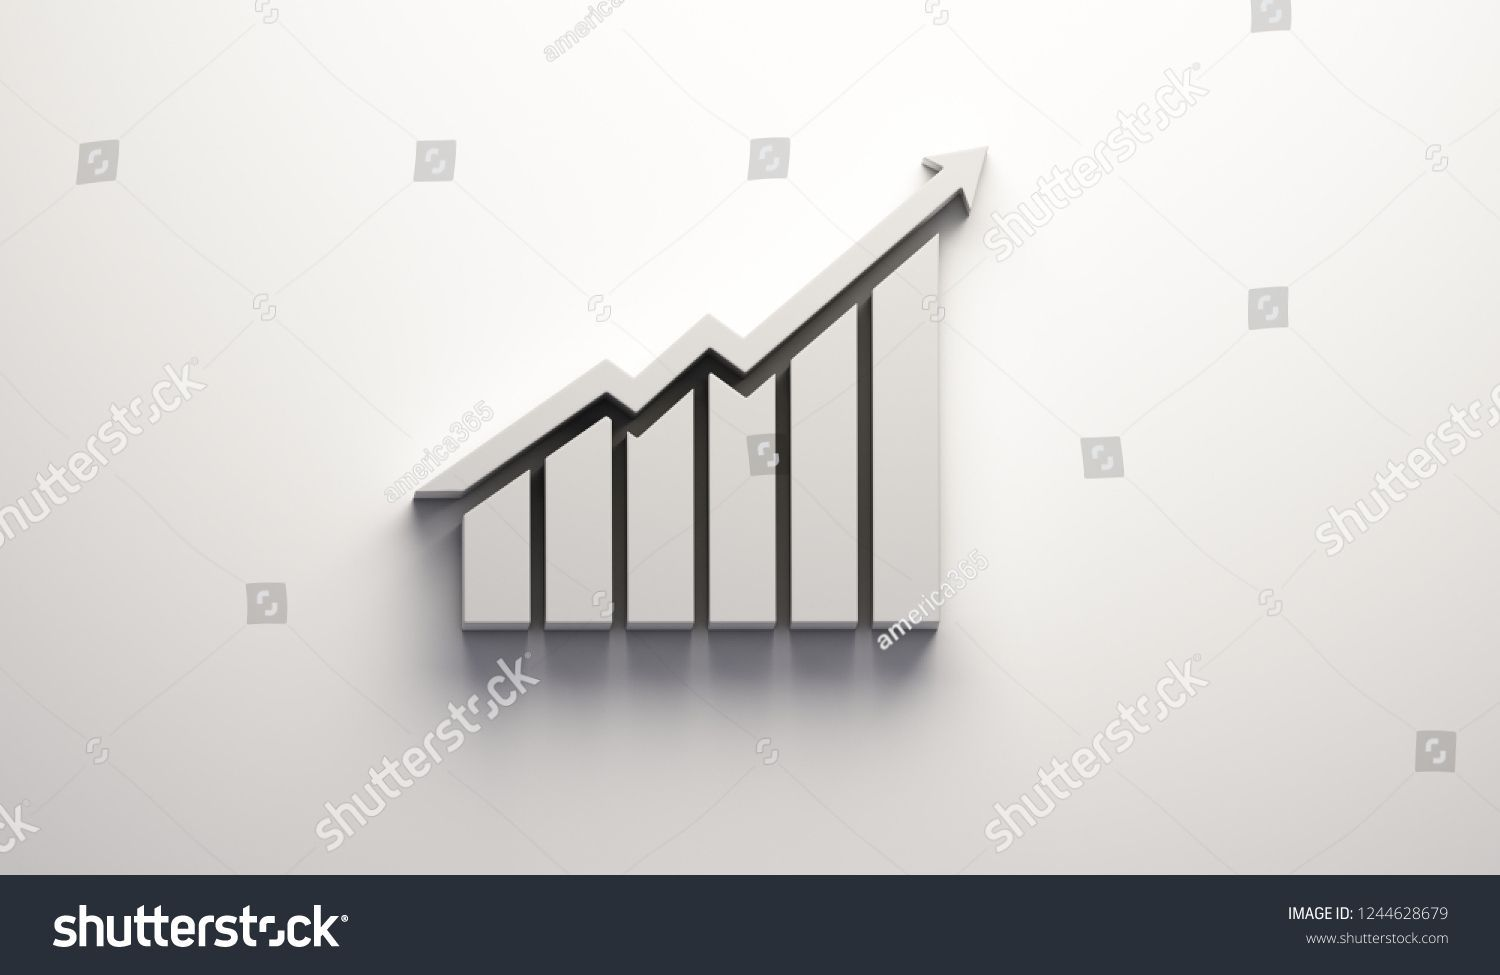 Finance Growth Bar And Arrow 3d Render Illustration Finance Graph Business Chart Growth Financial Success Dia Finance Stock Illustration Illustration